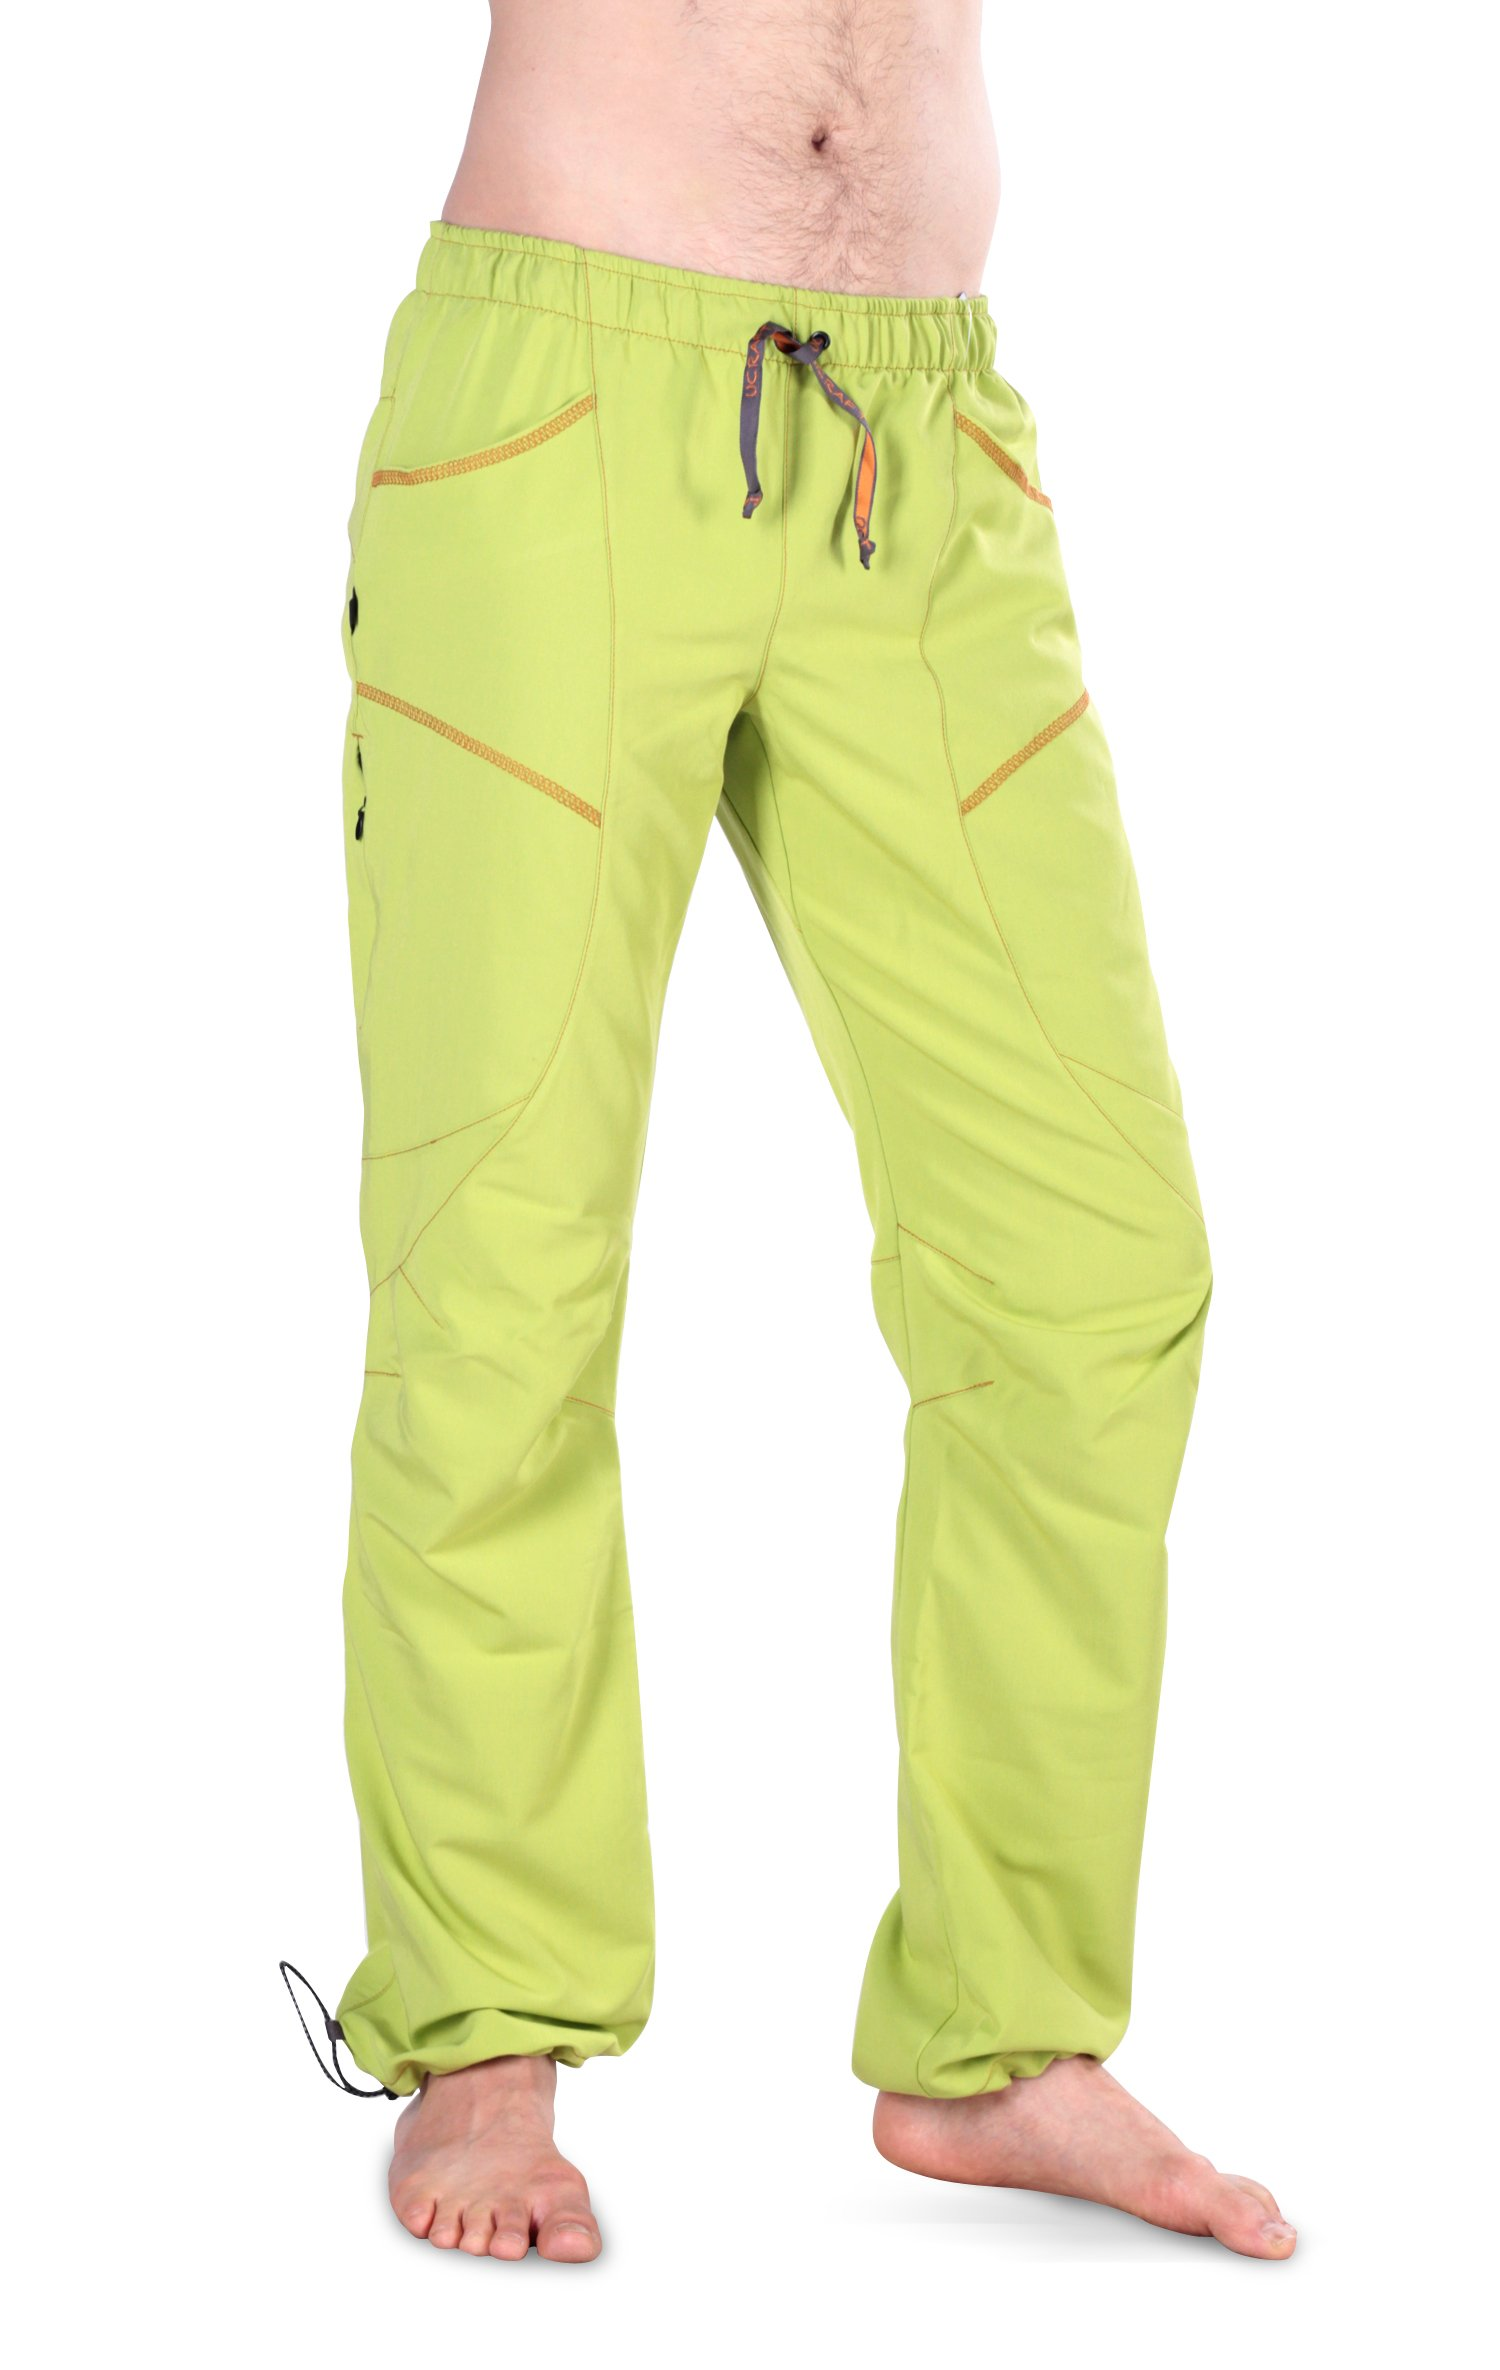 """Ucraft """"Xlite Rock Climbing Bouldering and Yoga Pants. Lightweight Stretchy Trousers"""